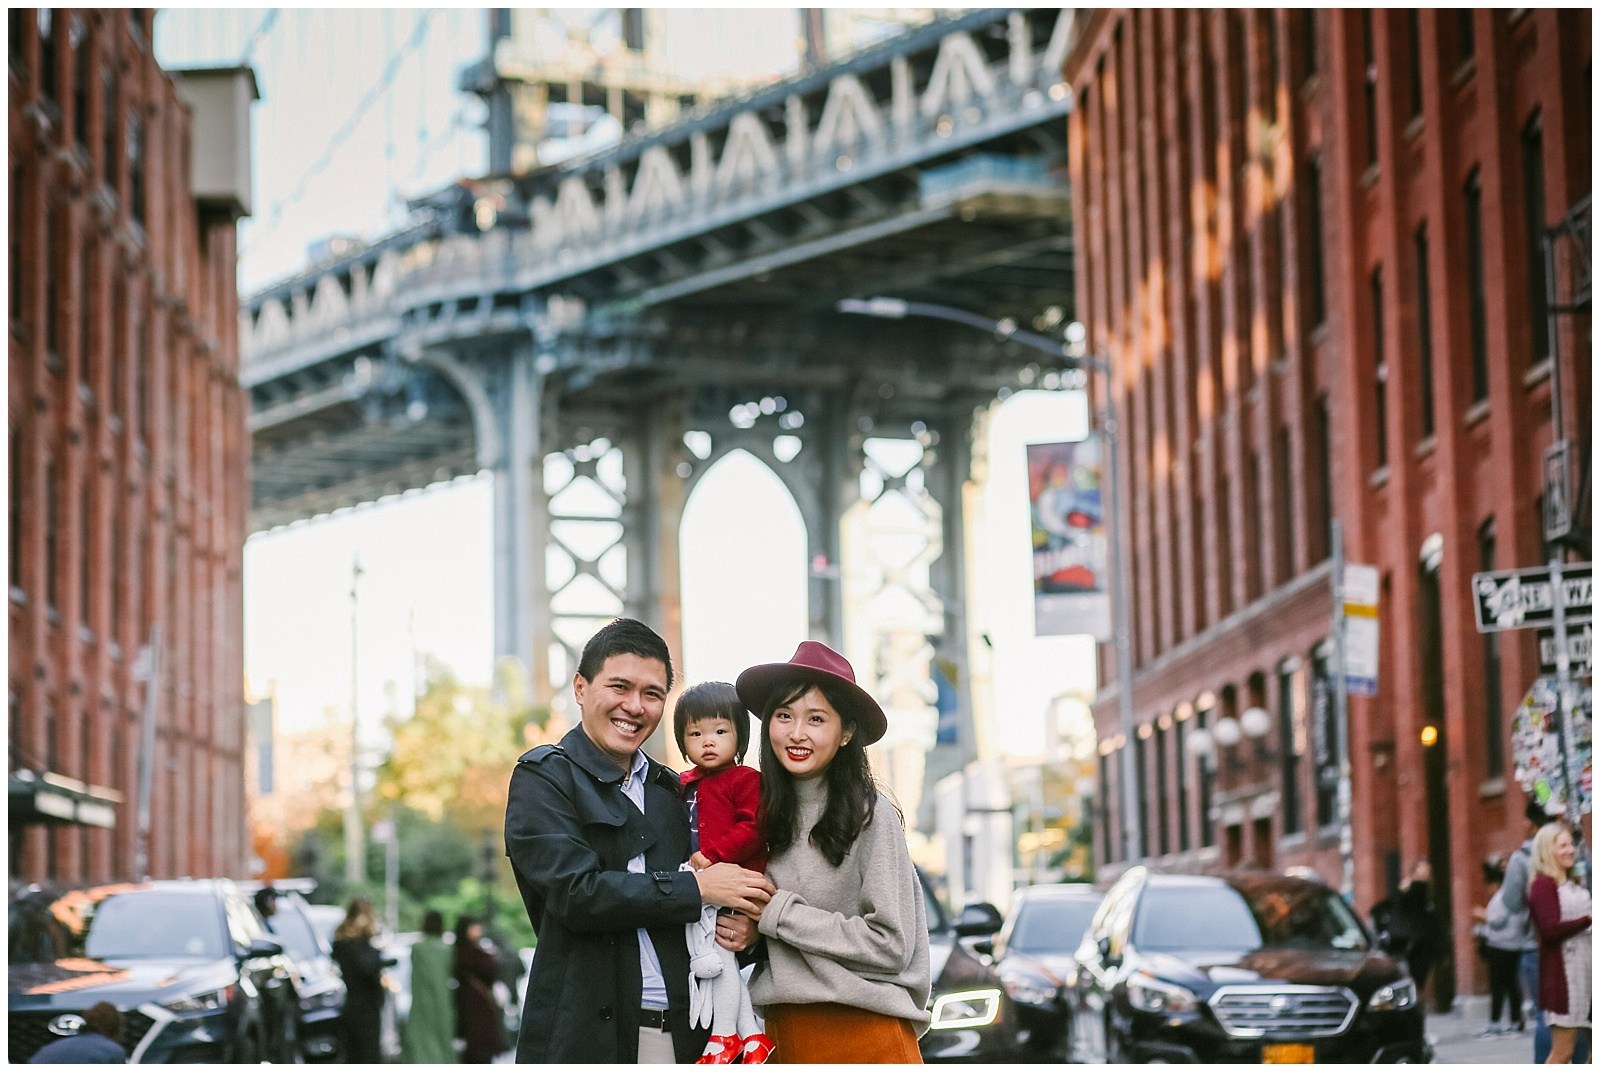 family smiling in front of Manhattan Bridge in DUMBO Brooklyn | Helena Woods nyc family photographer